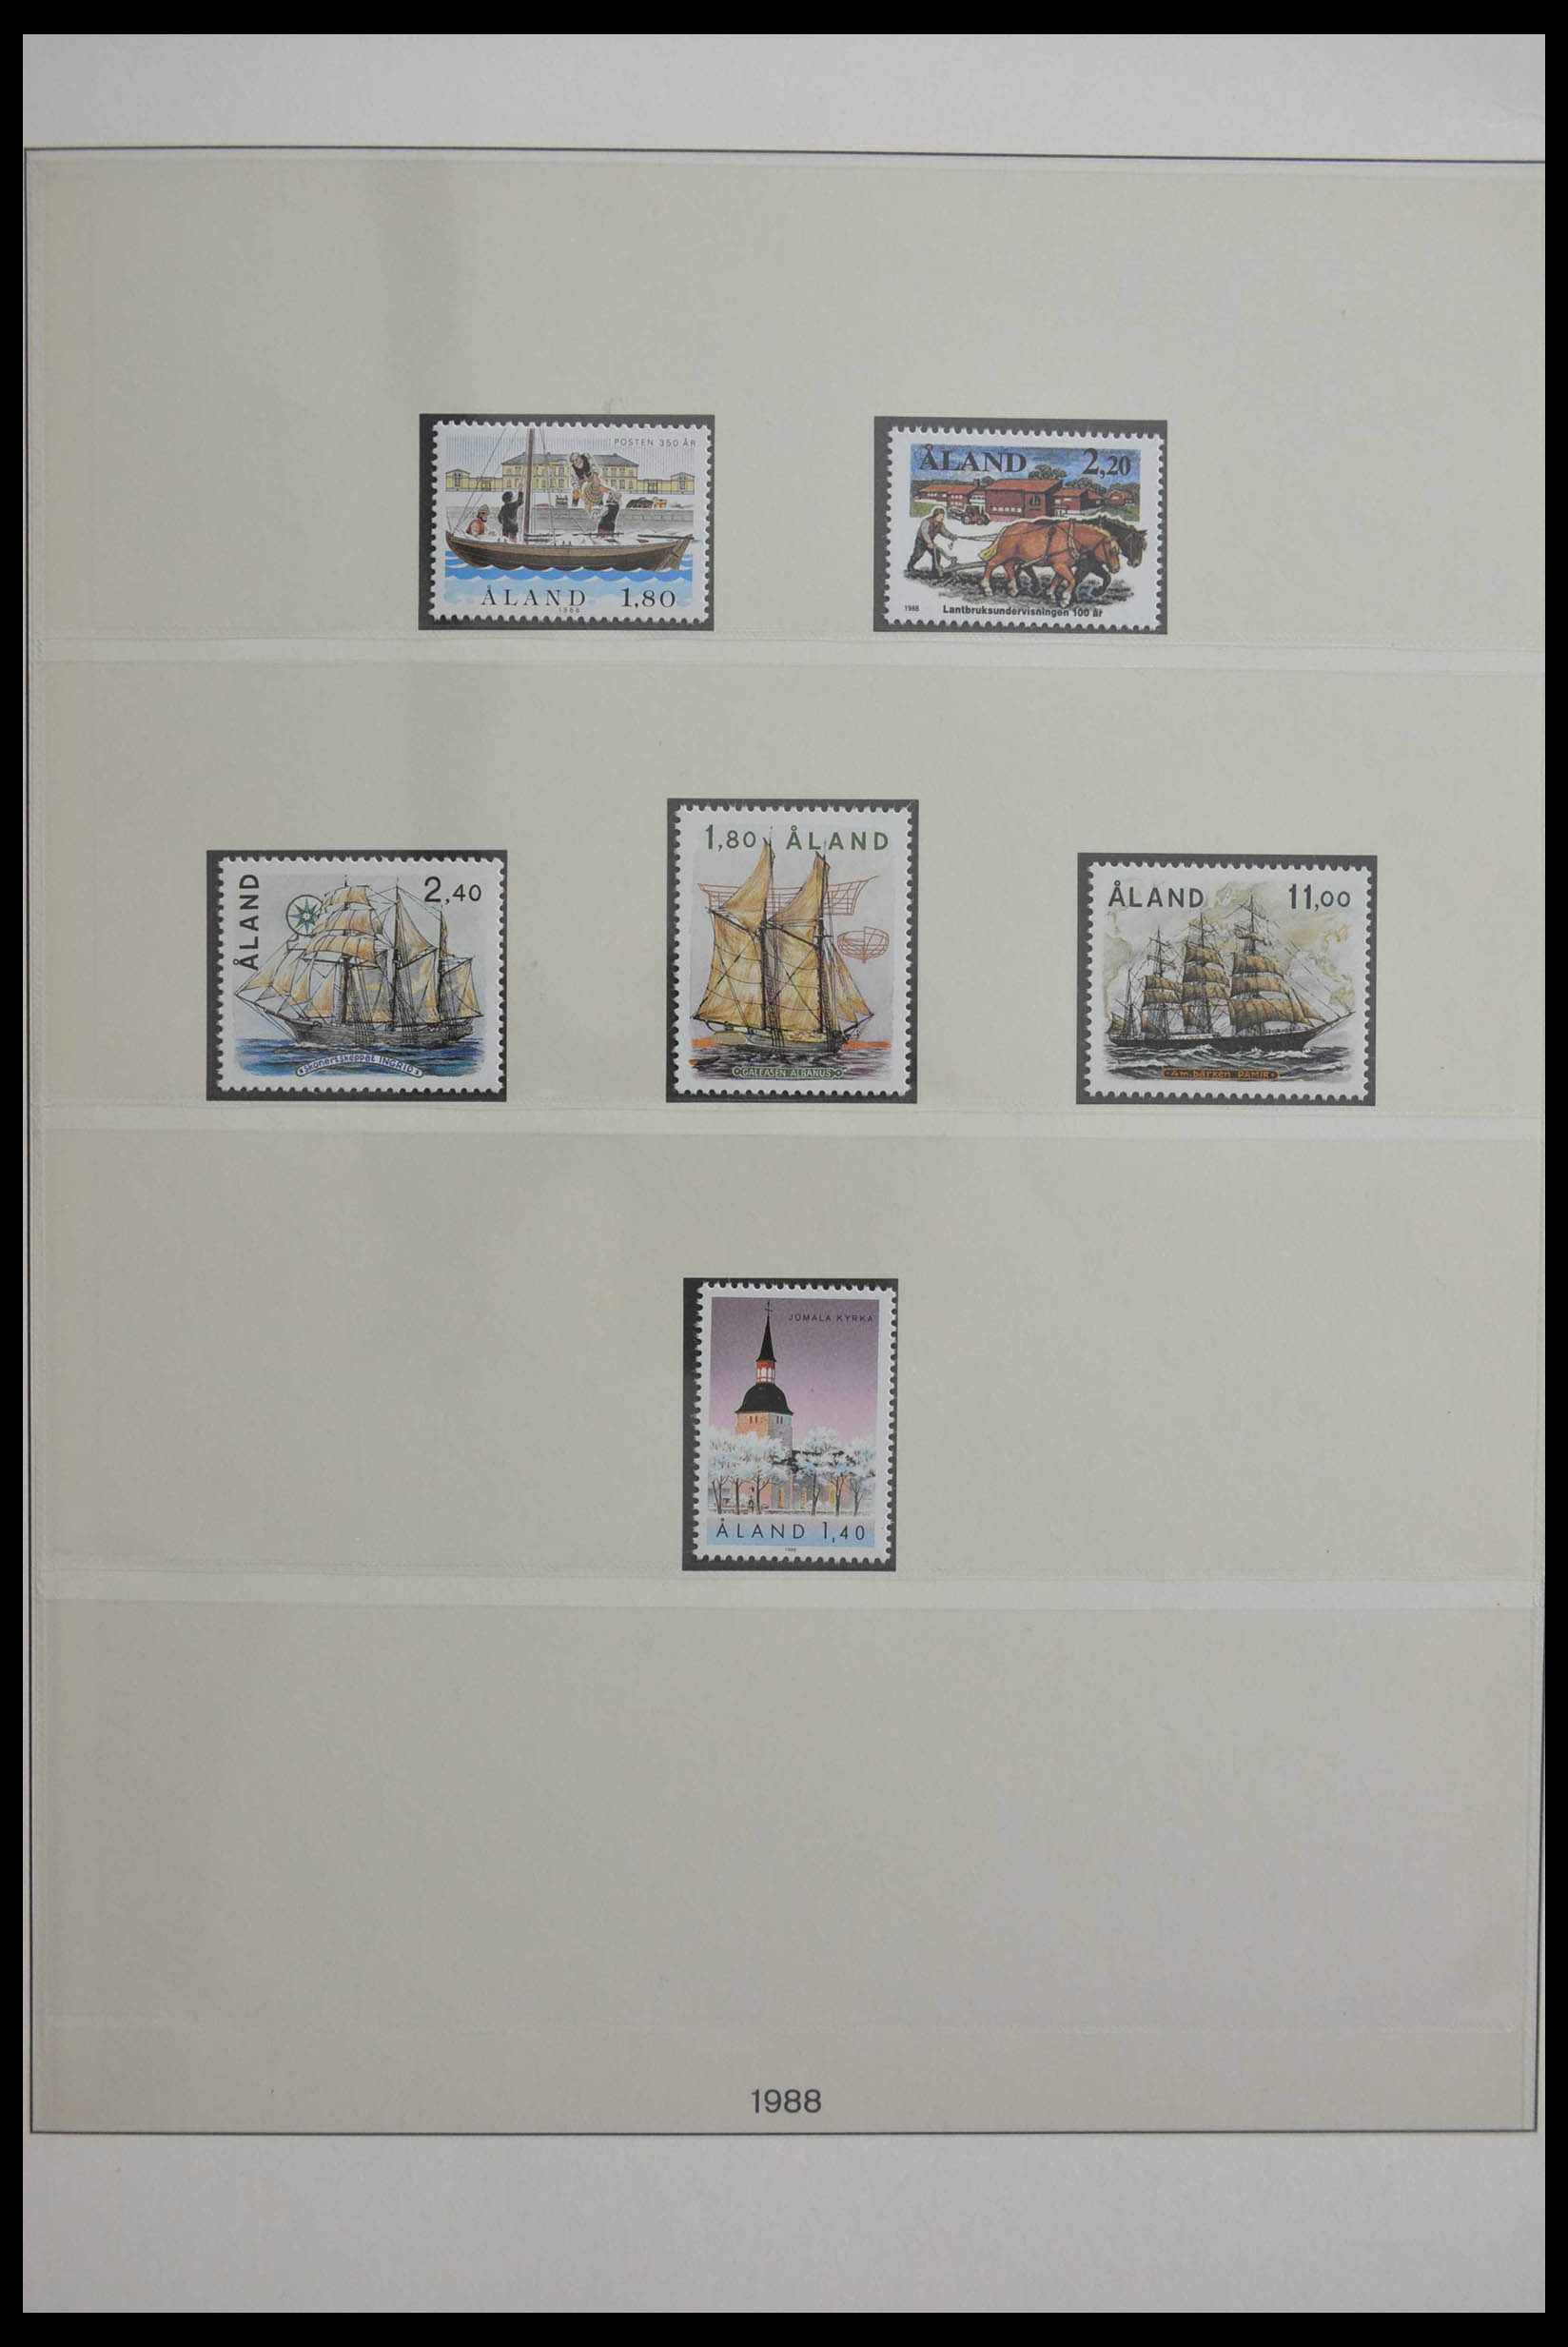 28584 005 - Stamp collection 28584 Aland 1984-2011.